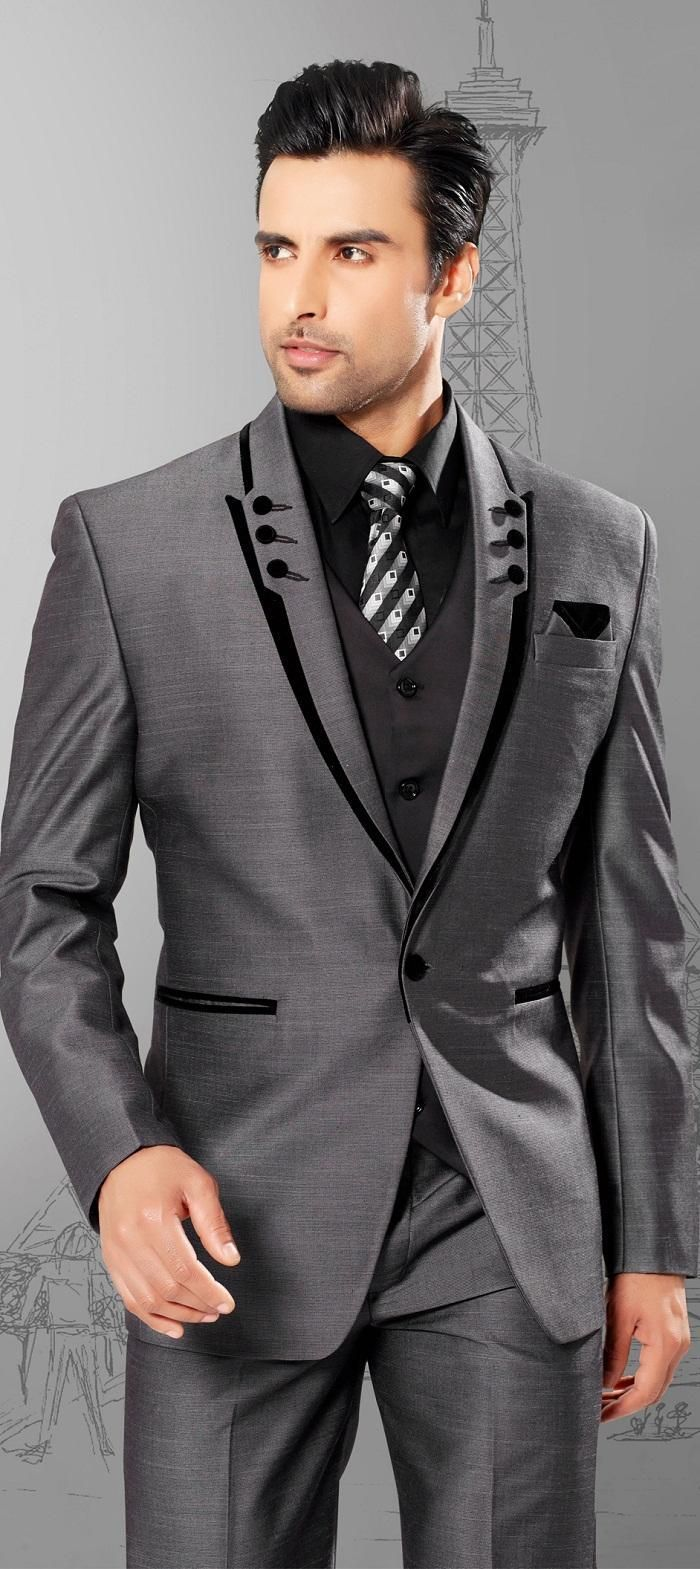 Full Black Tuxedo Men Suits Slim Fit Peaked Lapel Tuxedos Grey Wedding Suits For Men 2015 Groomsmen Suits One Button Mens Suit Jacket+Pants+Vest White And Black Prom Suits From Ebelz005, $138.22| Dhgate.Com